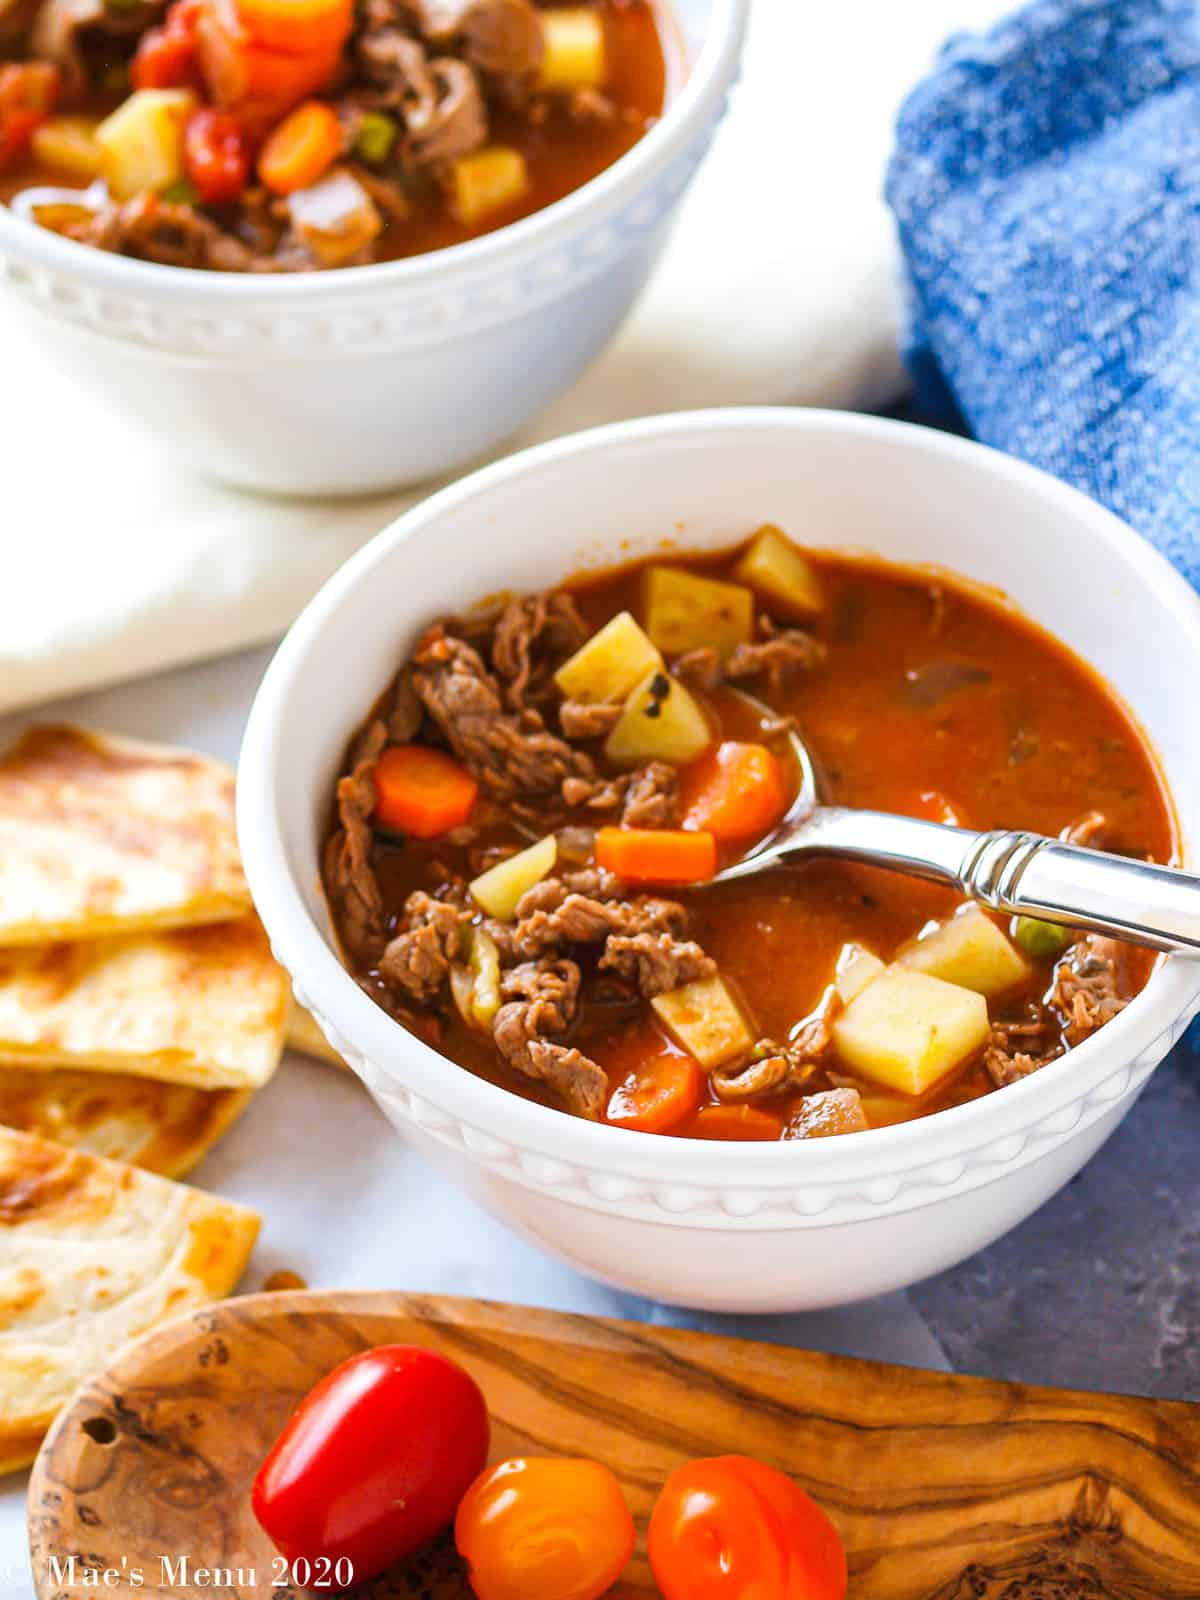 A side angle shot of two white bowls of steak soup with baby tomatoes and pita chips next to it